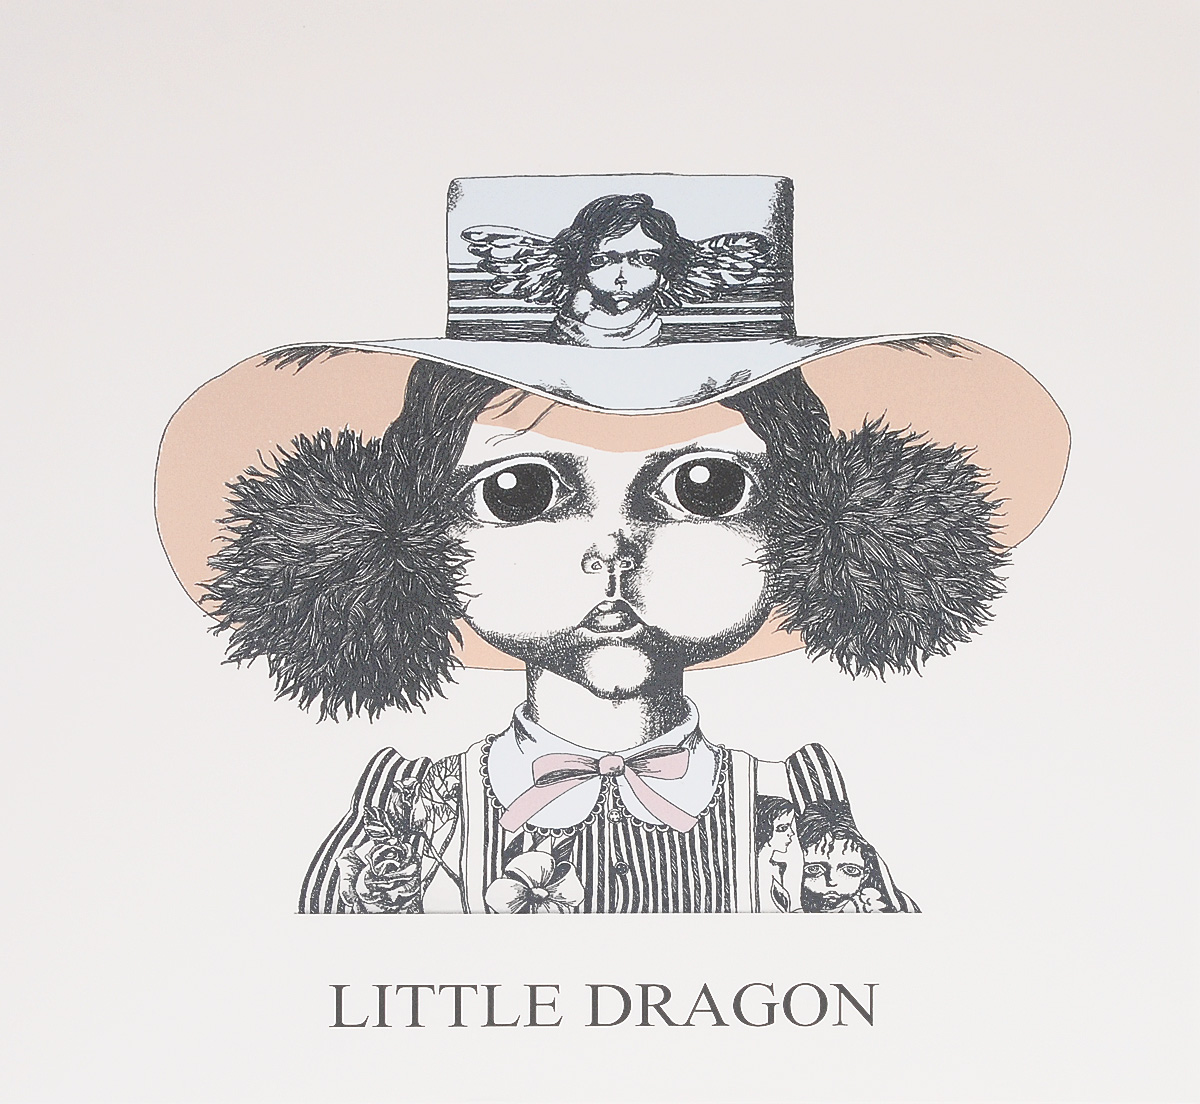 цена на Little Dragon Little Dragon. Little Dragon (LP)